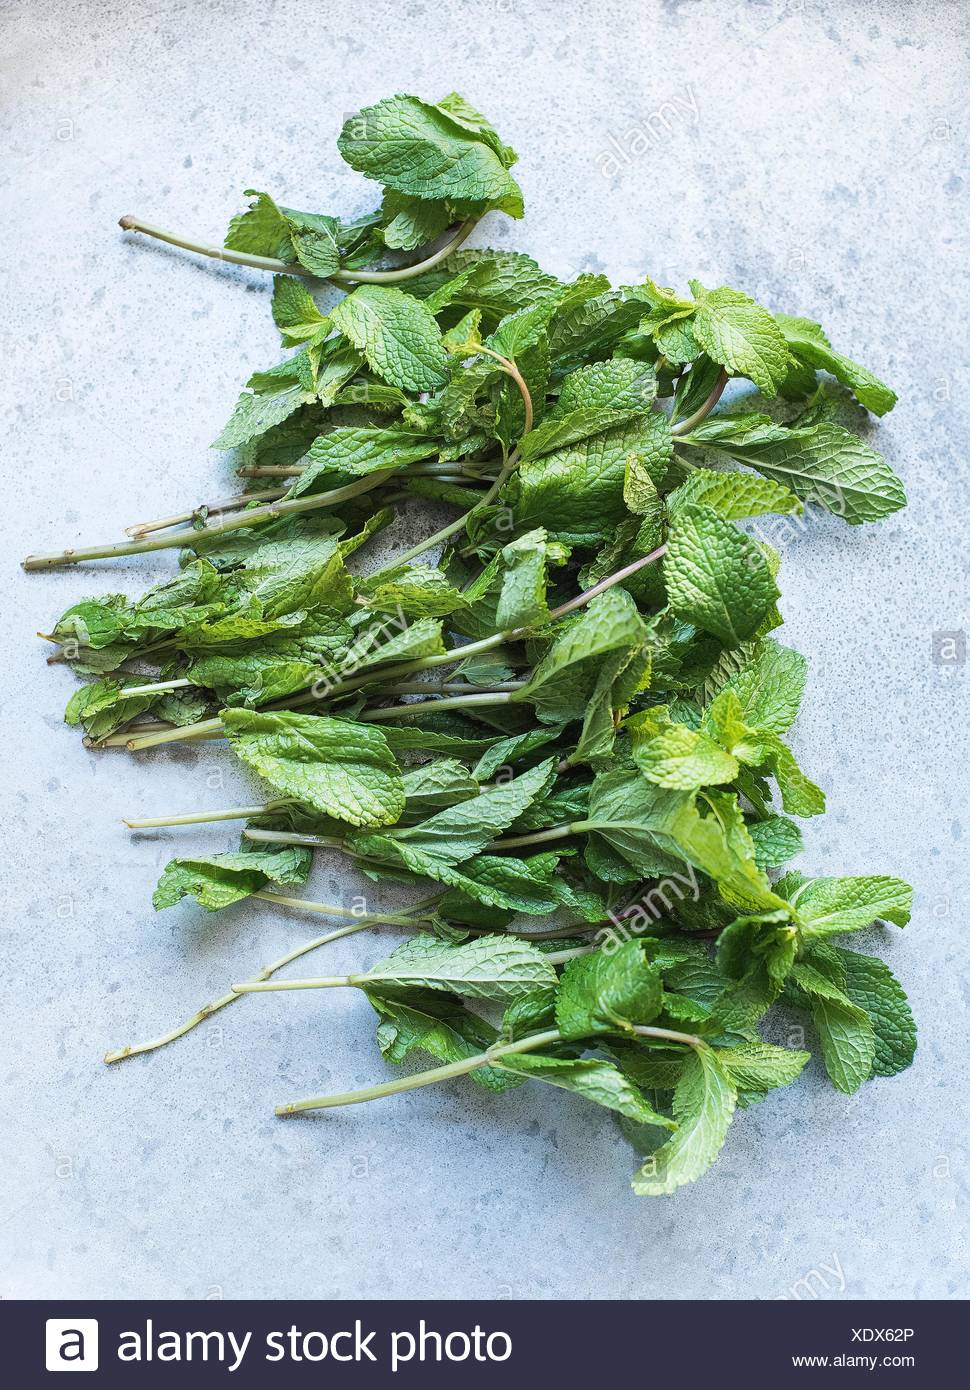 Overhead view of stems of mint leaves - Stock Image